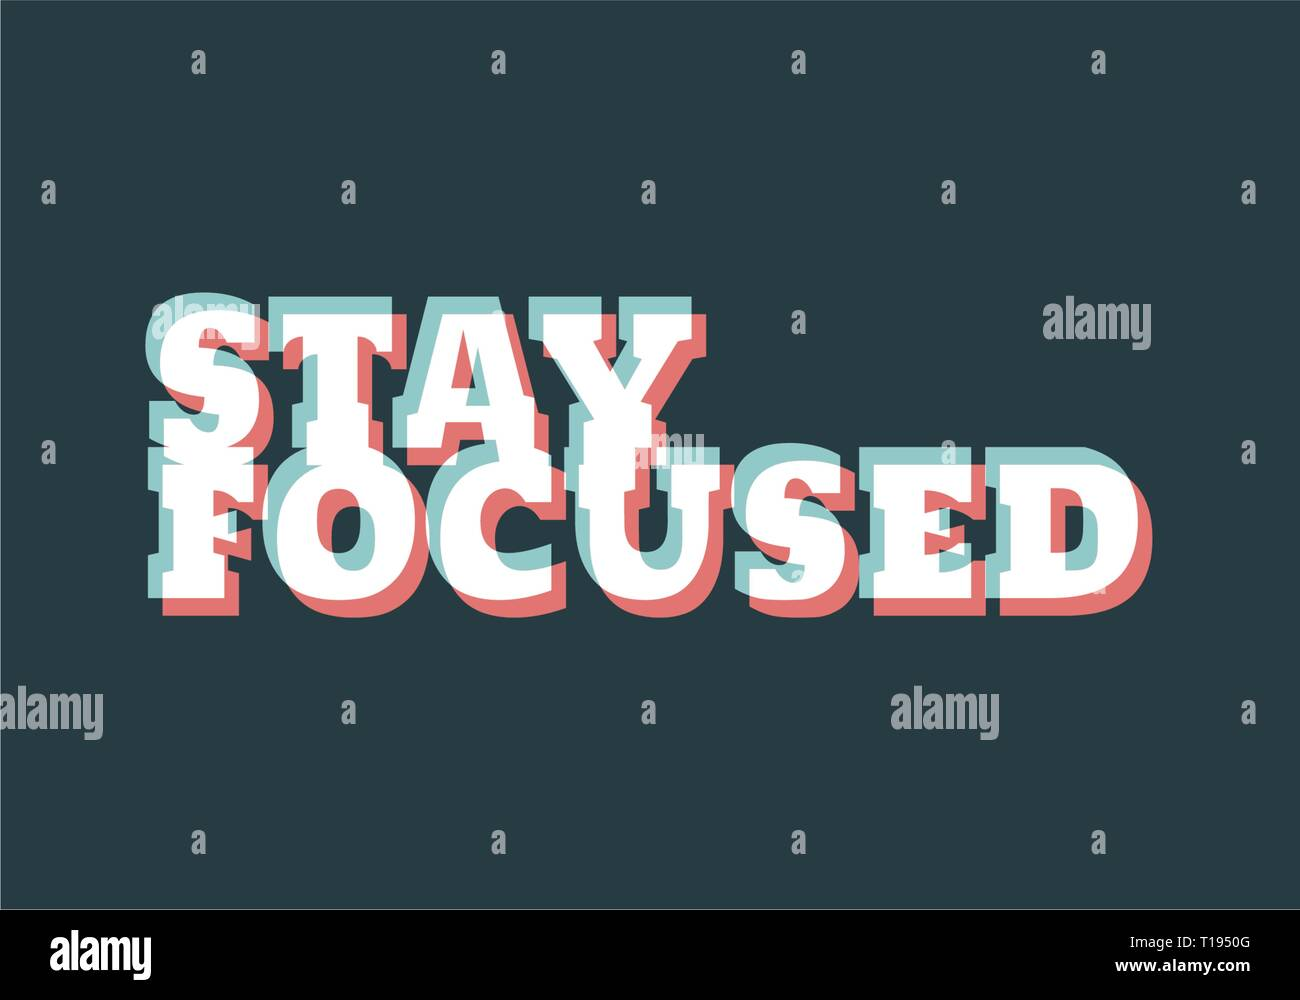 Stay focused inspirational phrase. - Stock Image